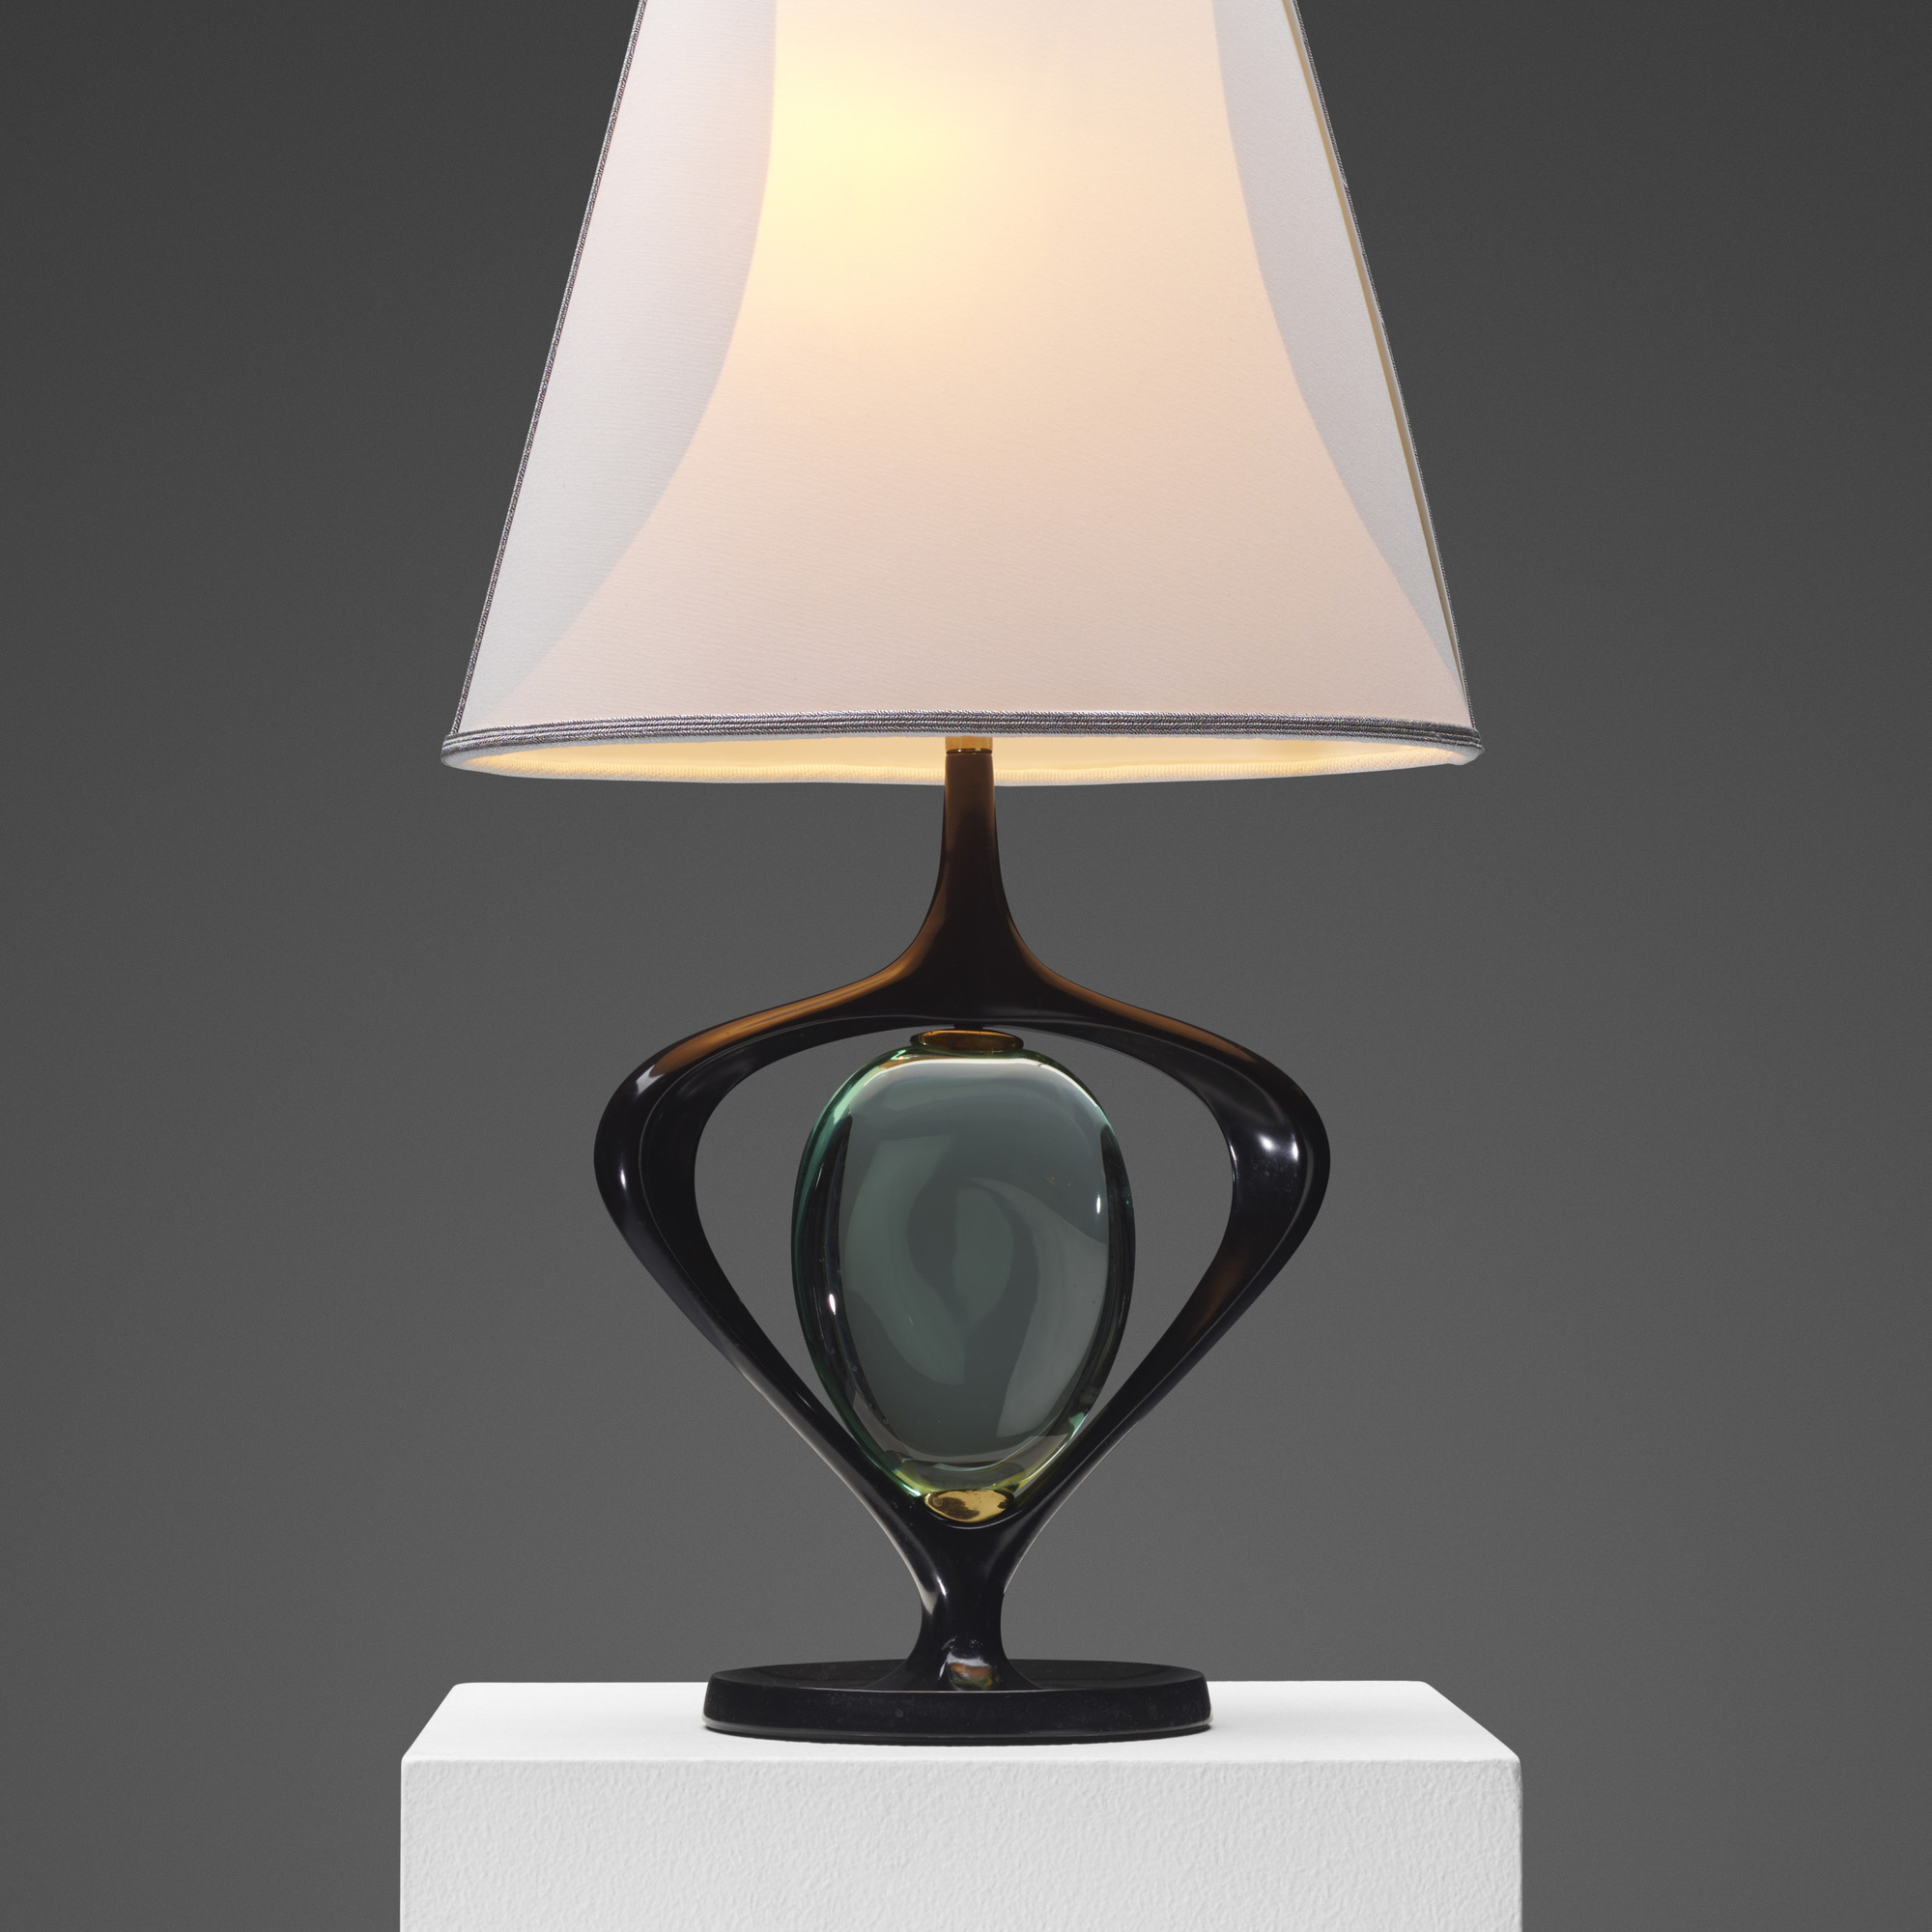 190: Max Ingrand / rare table lamp (2 of 2)